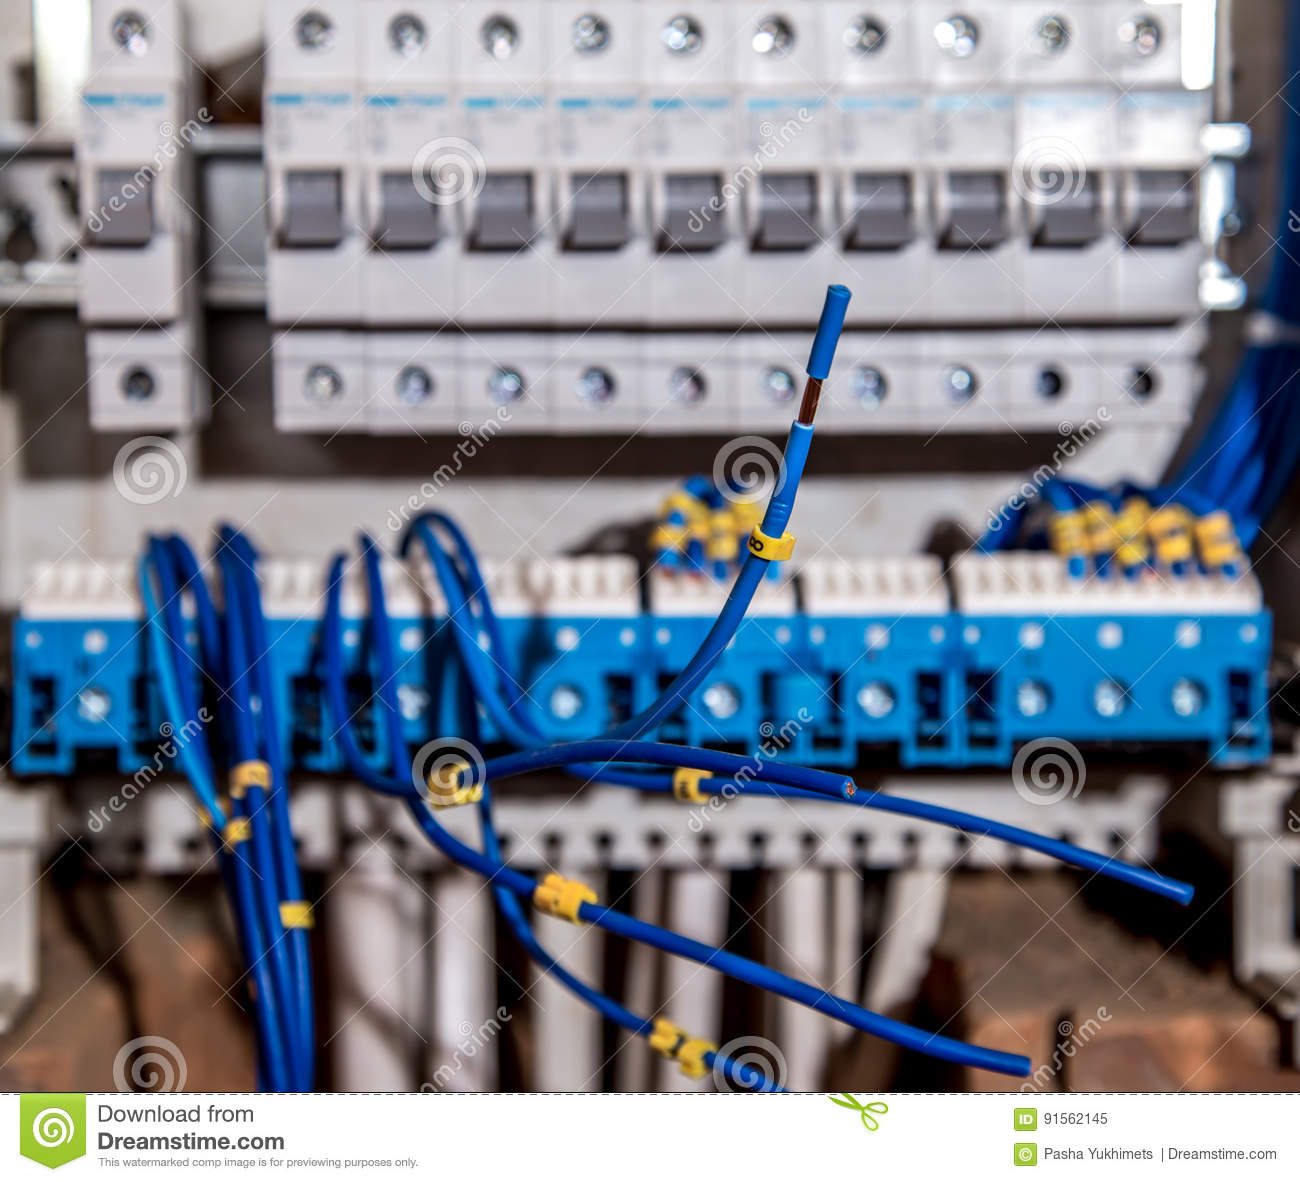 The Assembly Of Electrical Panel Electrician Job A Robot With Wiring Circuitbreaker Electricalpanel Wires And Circuit Breakers Tools